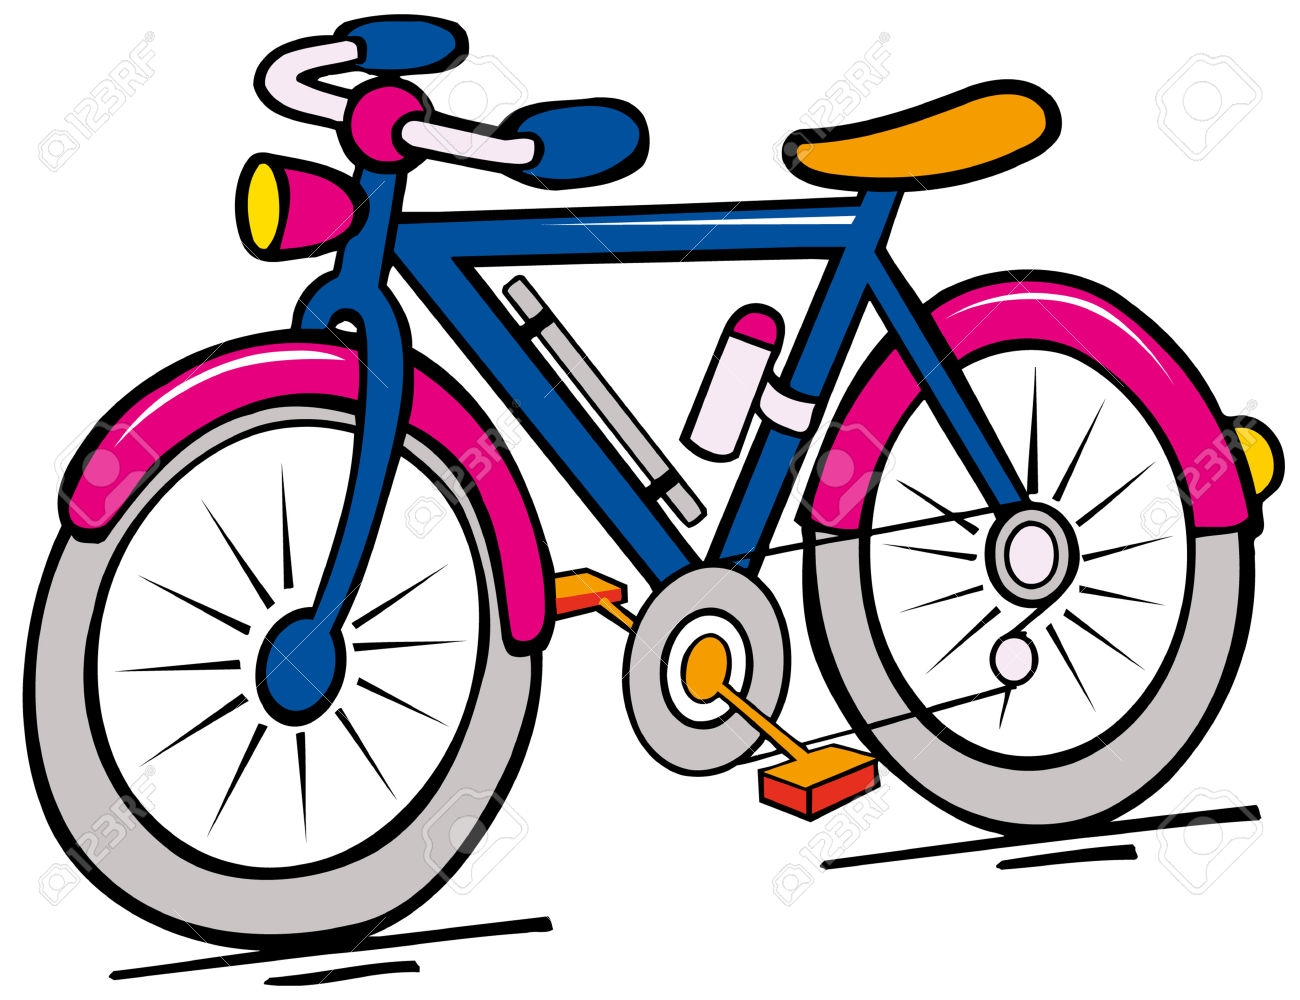 bike clipart at getdrawings com free for personal use bike clipart of your choice horse vector diseases horse vector image free